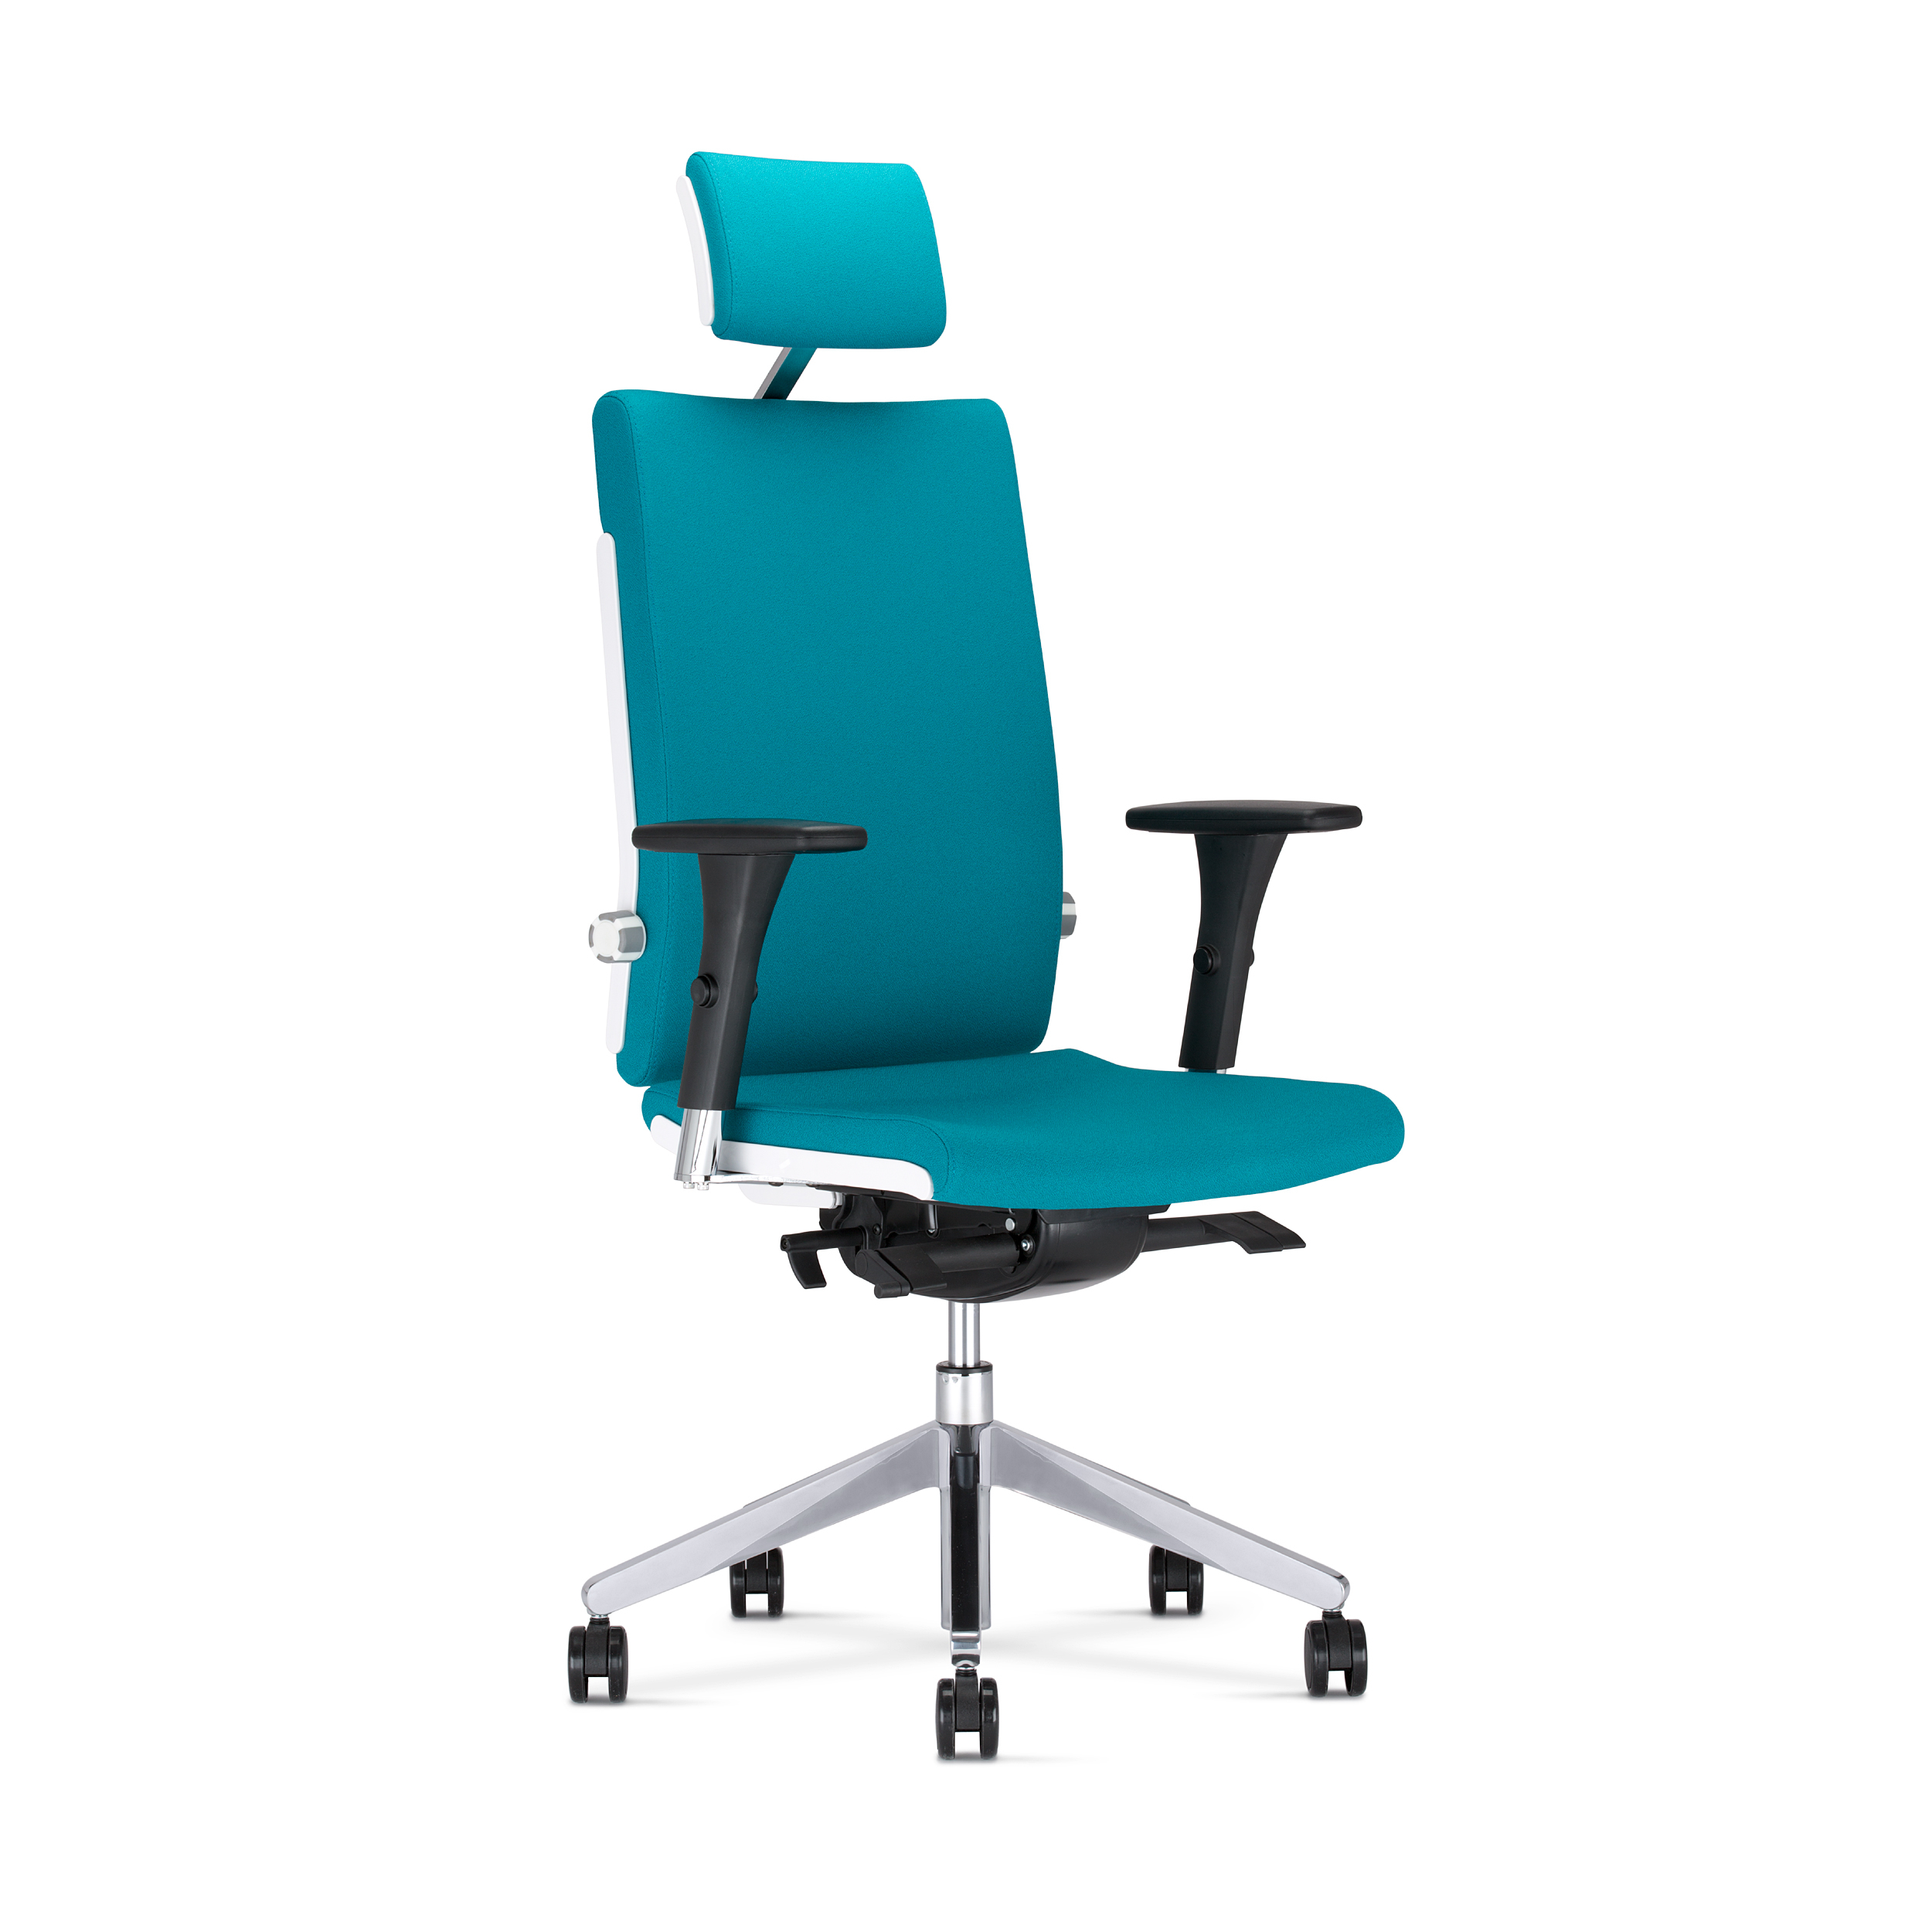 office-chairs_1-1_Belite-6